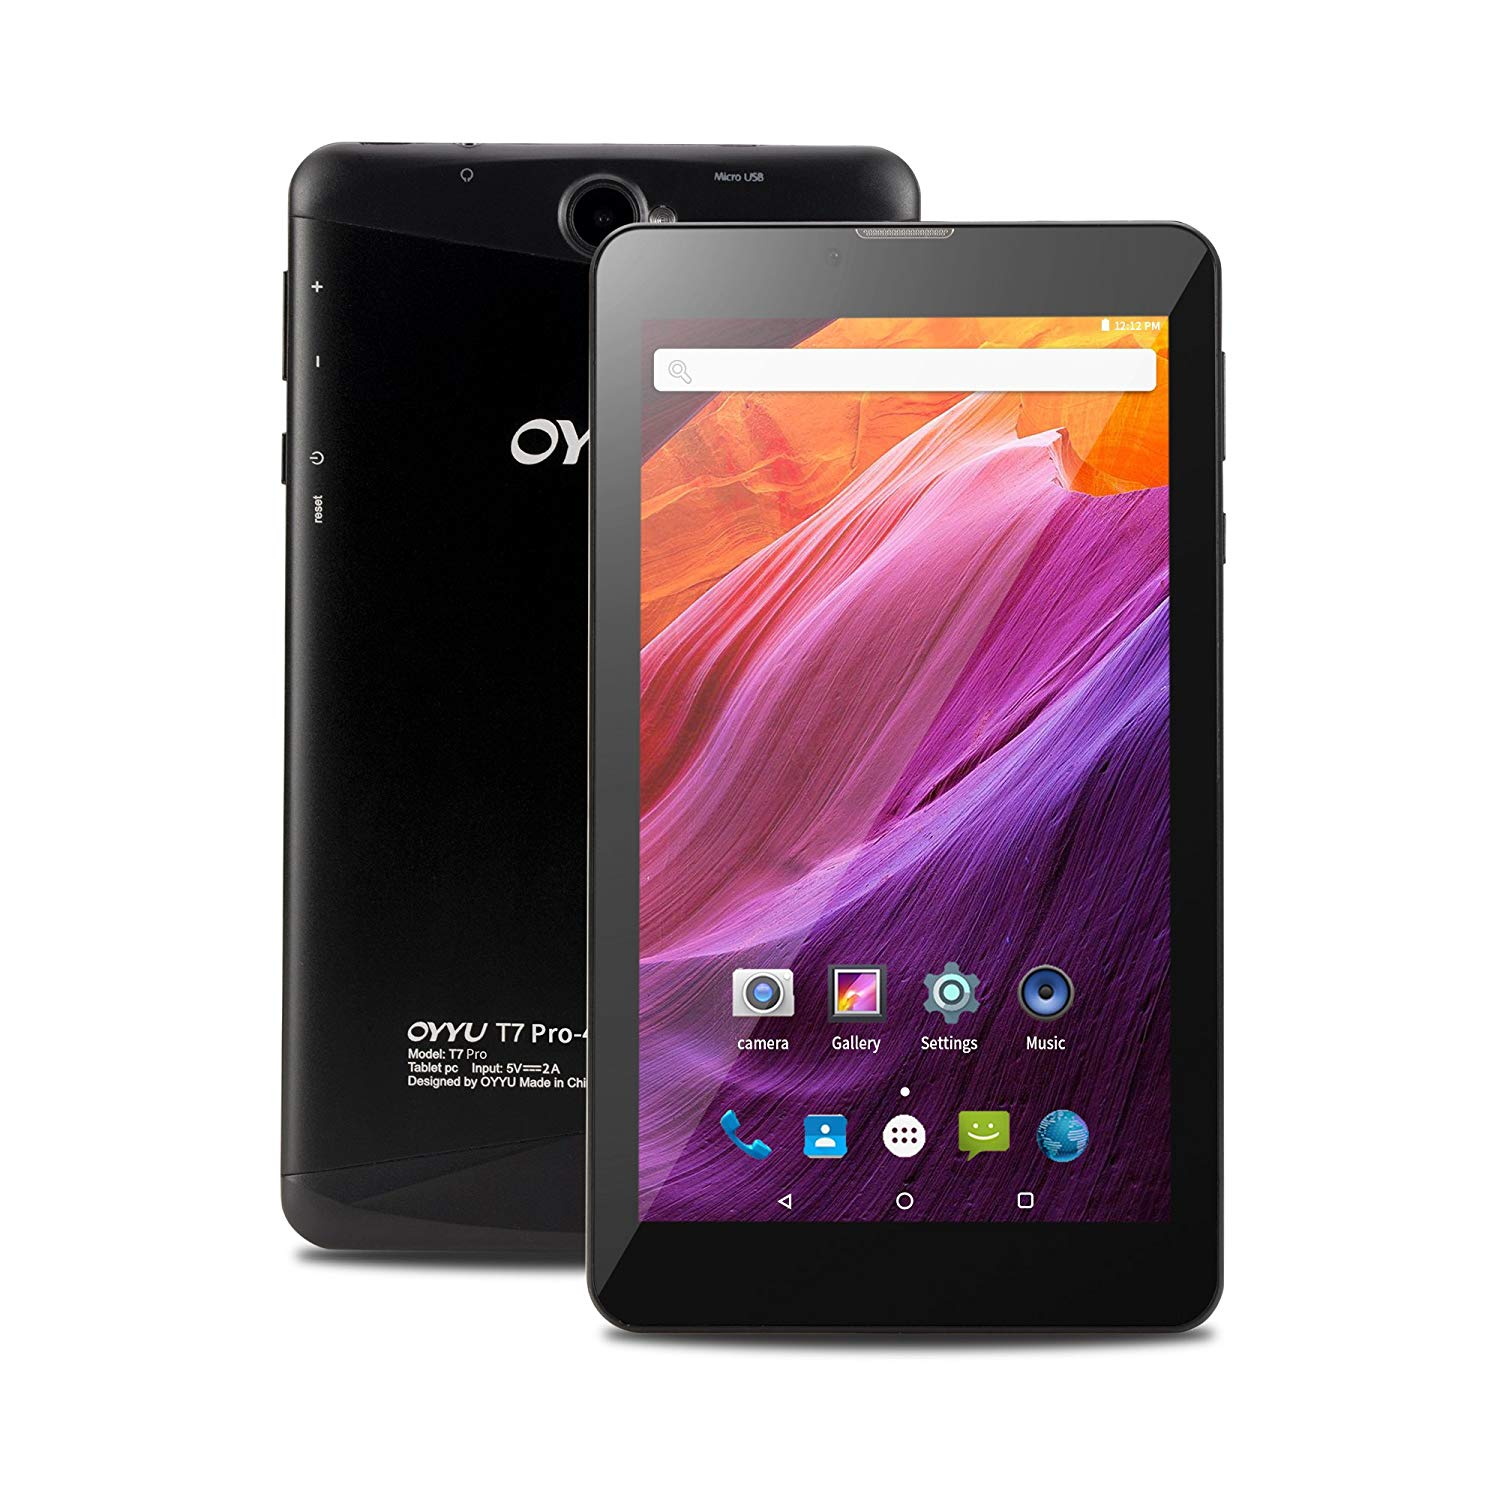 2018 OYYU T7 Pro 7 Inch 4G LTE Phablet - Best Reviews Tablet